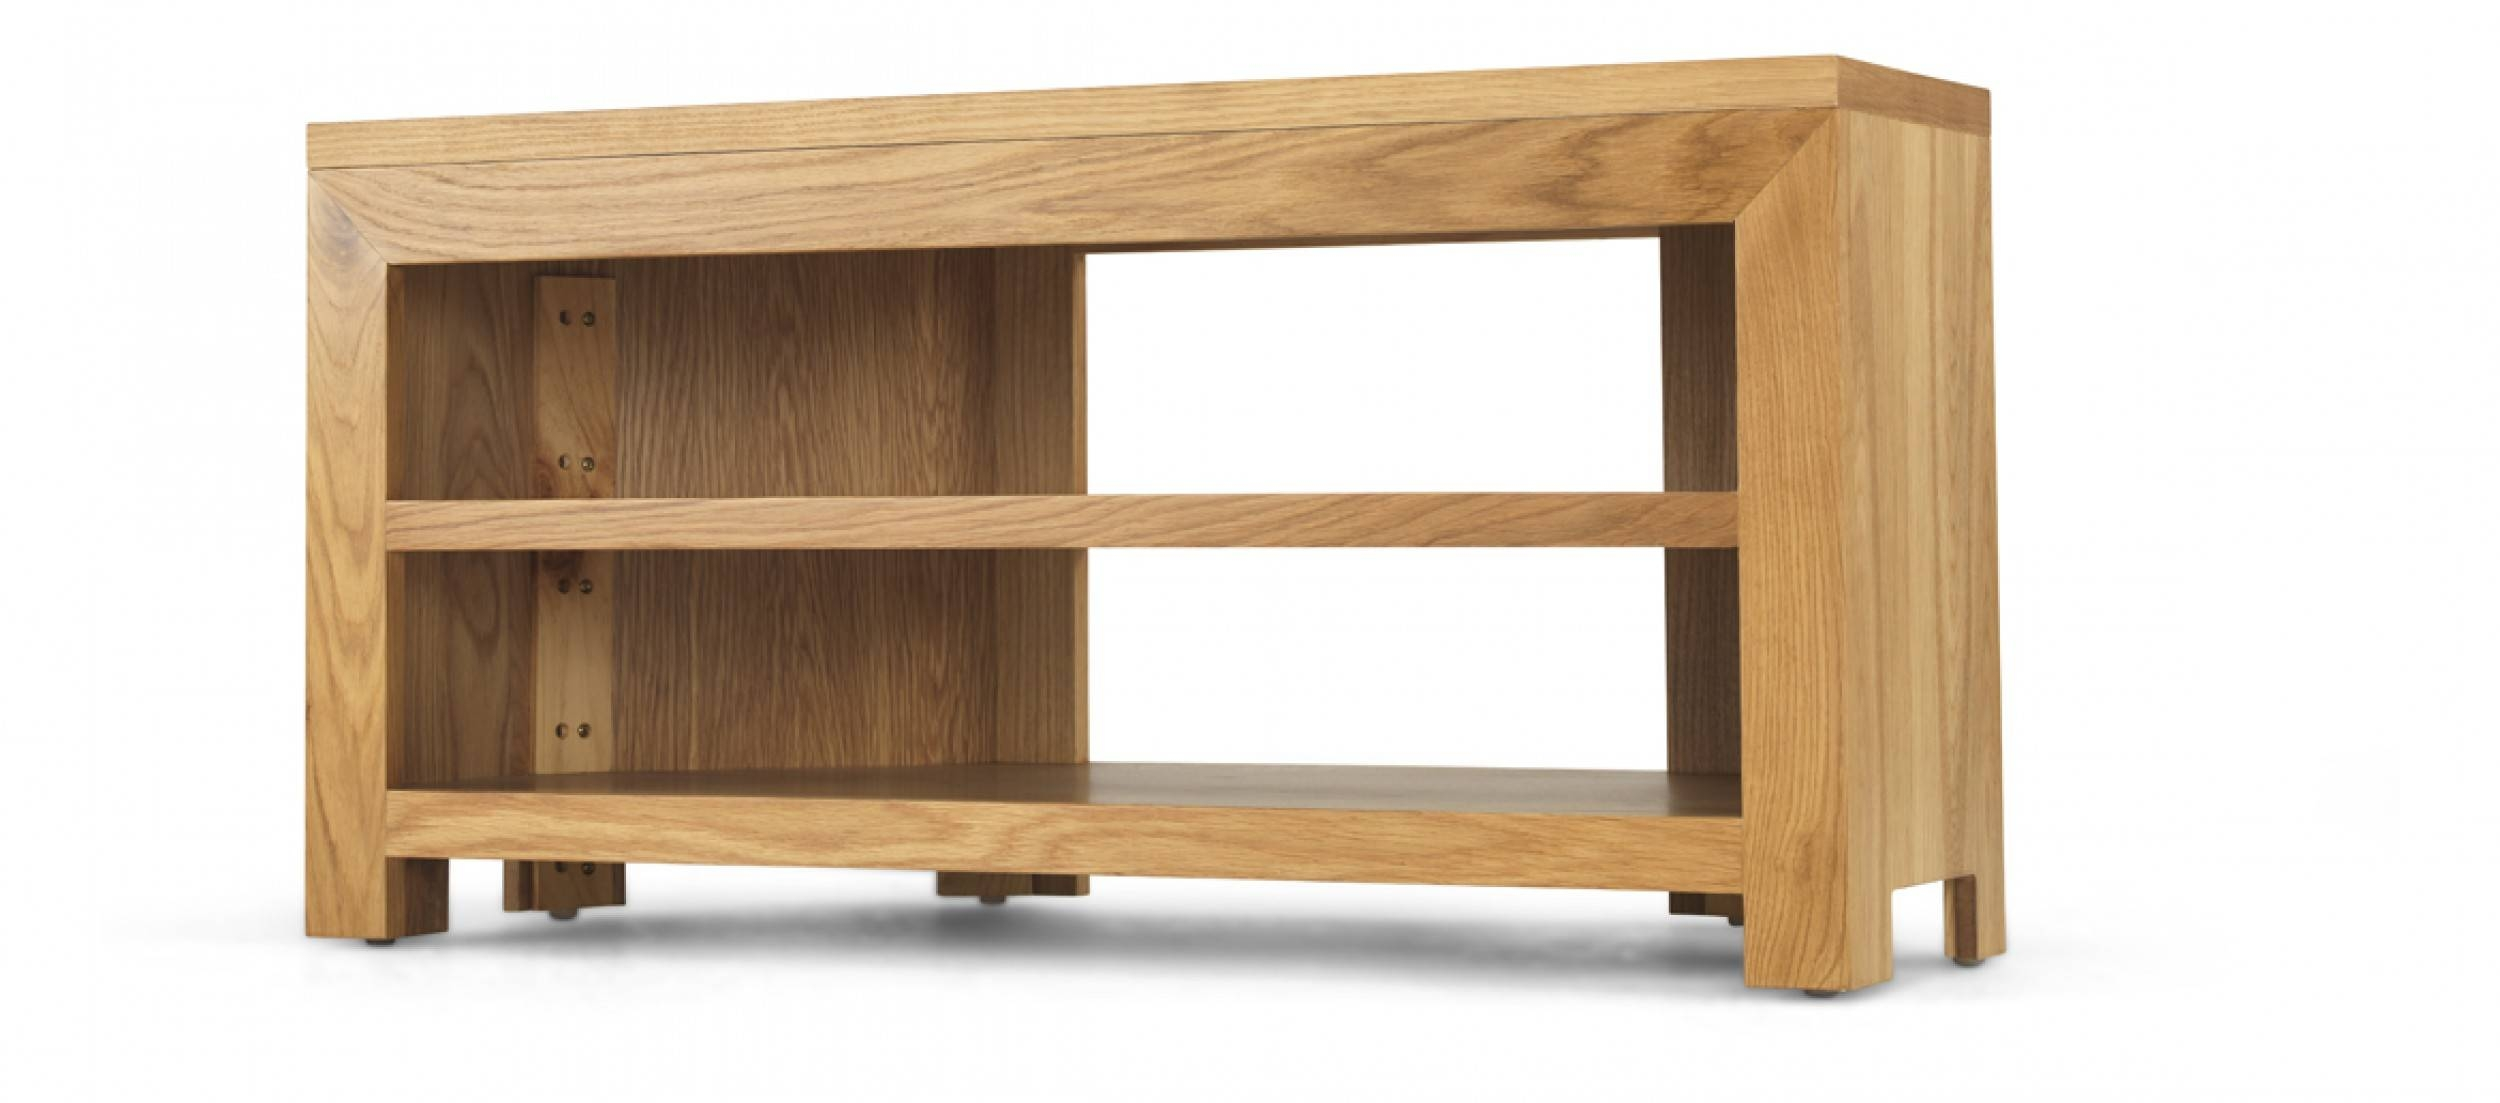 Cube Oak Open Corner Tv Unit | Quercus Living Throughout Corner Sideboard Unit (View 11 of 20)